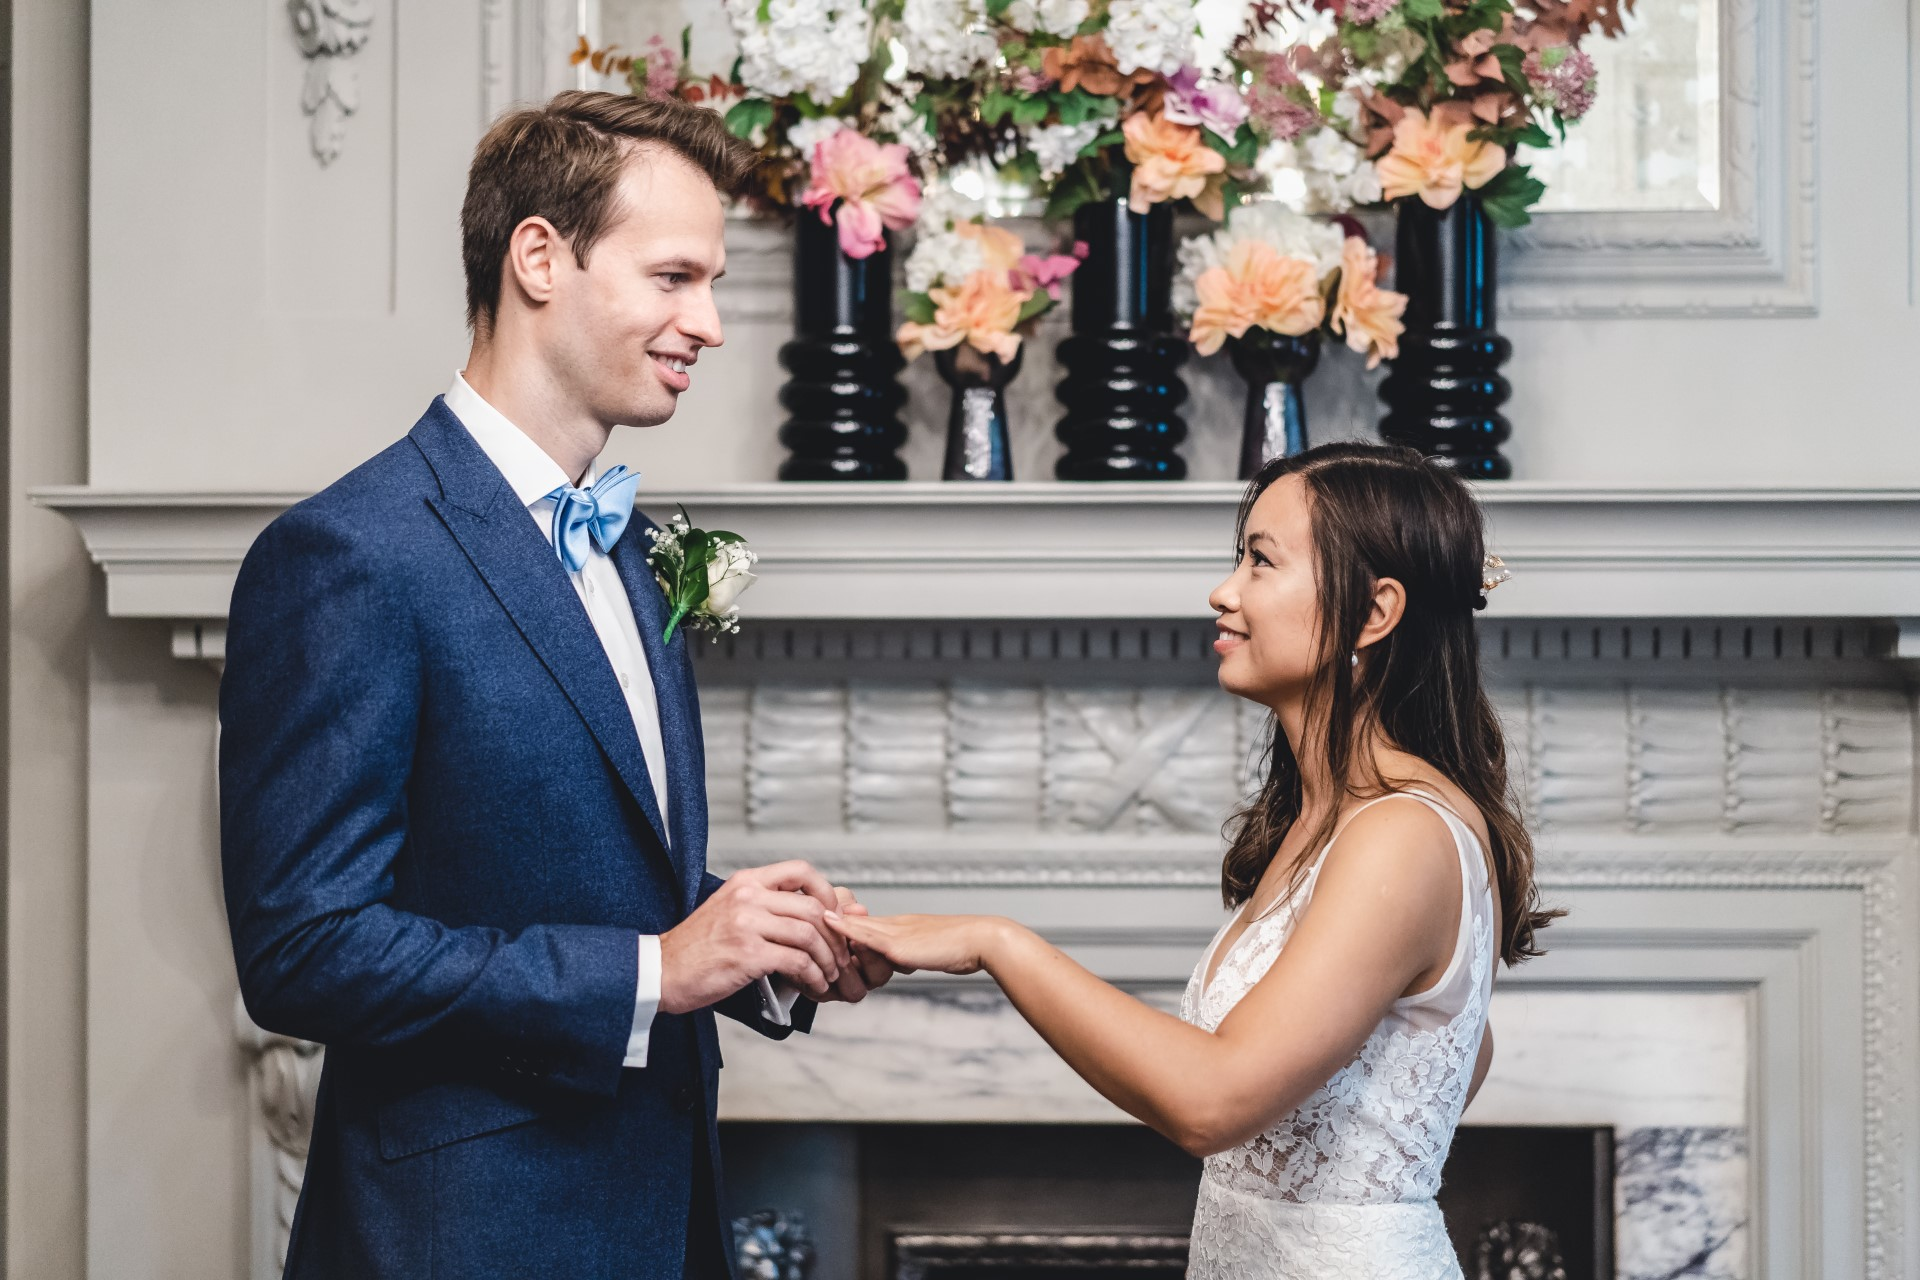 Marylebone Town Hall Wedding Photographers | the bride and groom exchange wedding rings